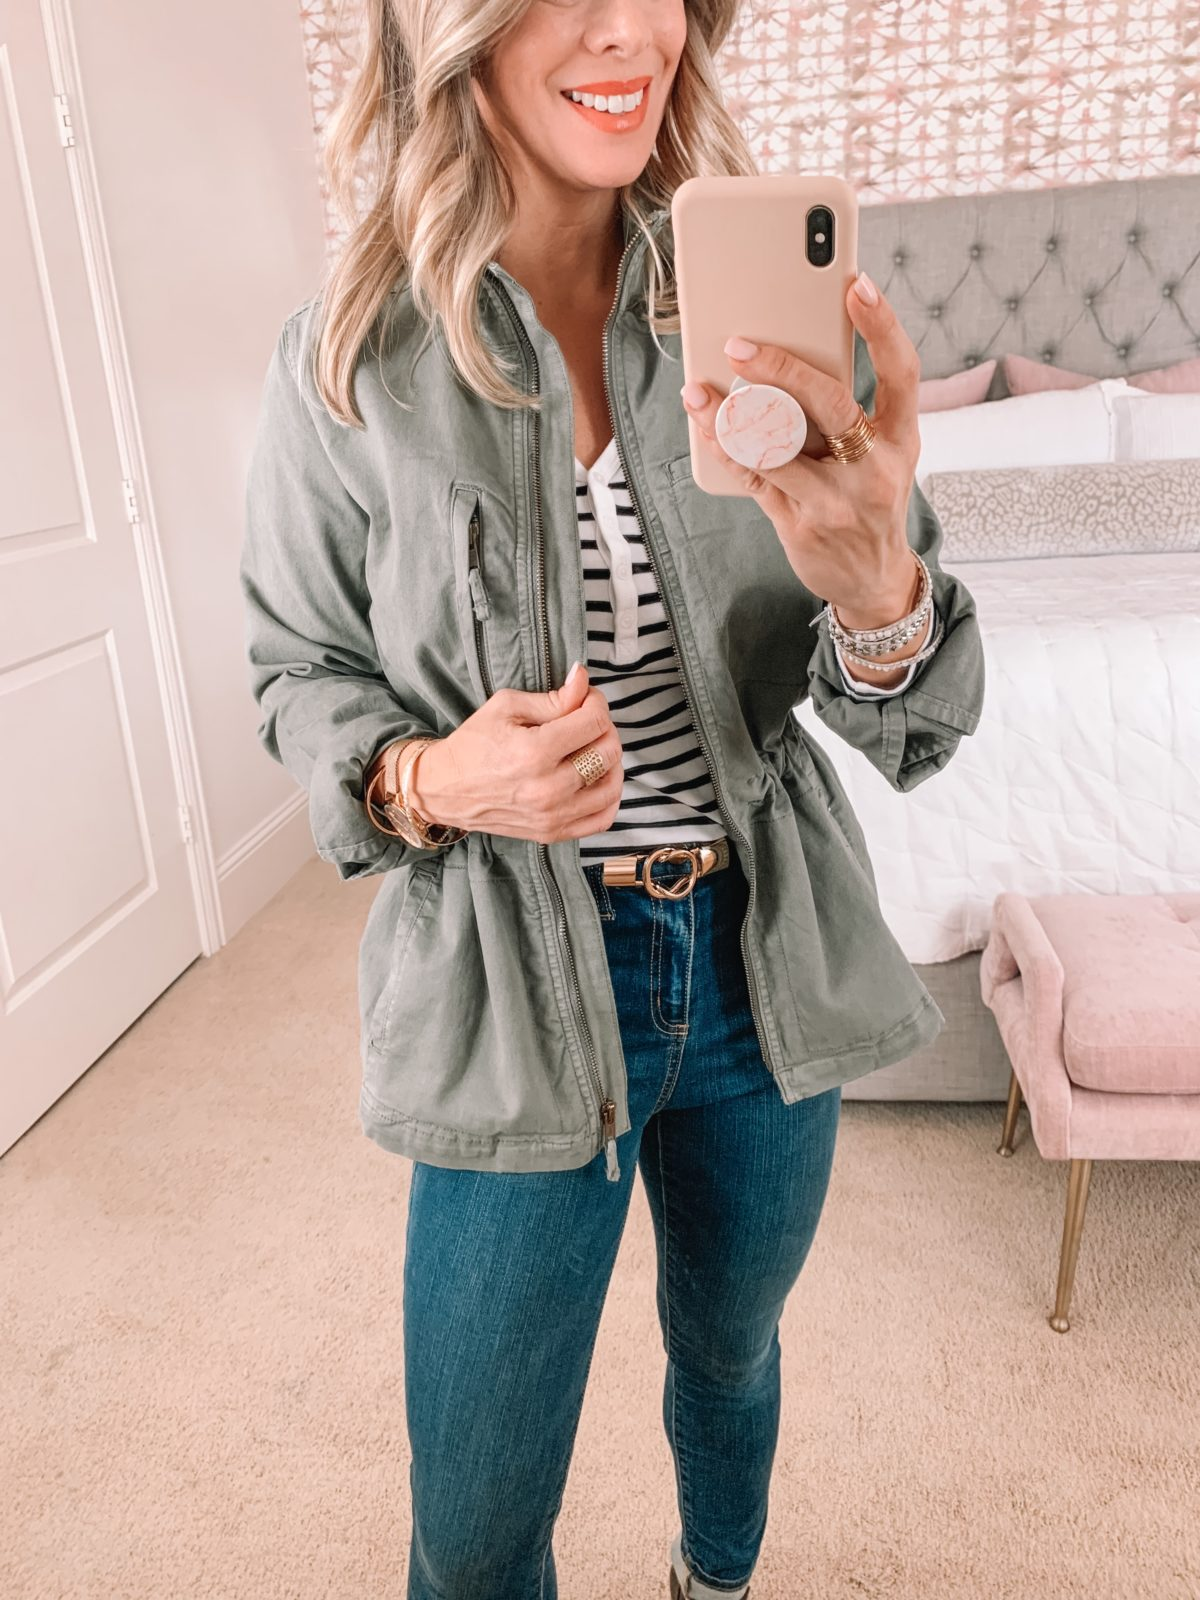 Amazon Capsule Wardrobe, Stripe Tee, Military Jacket, Jeans